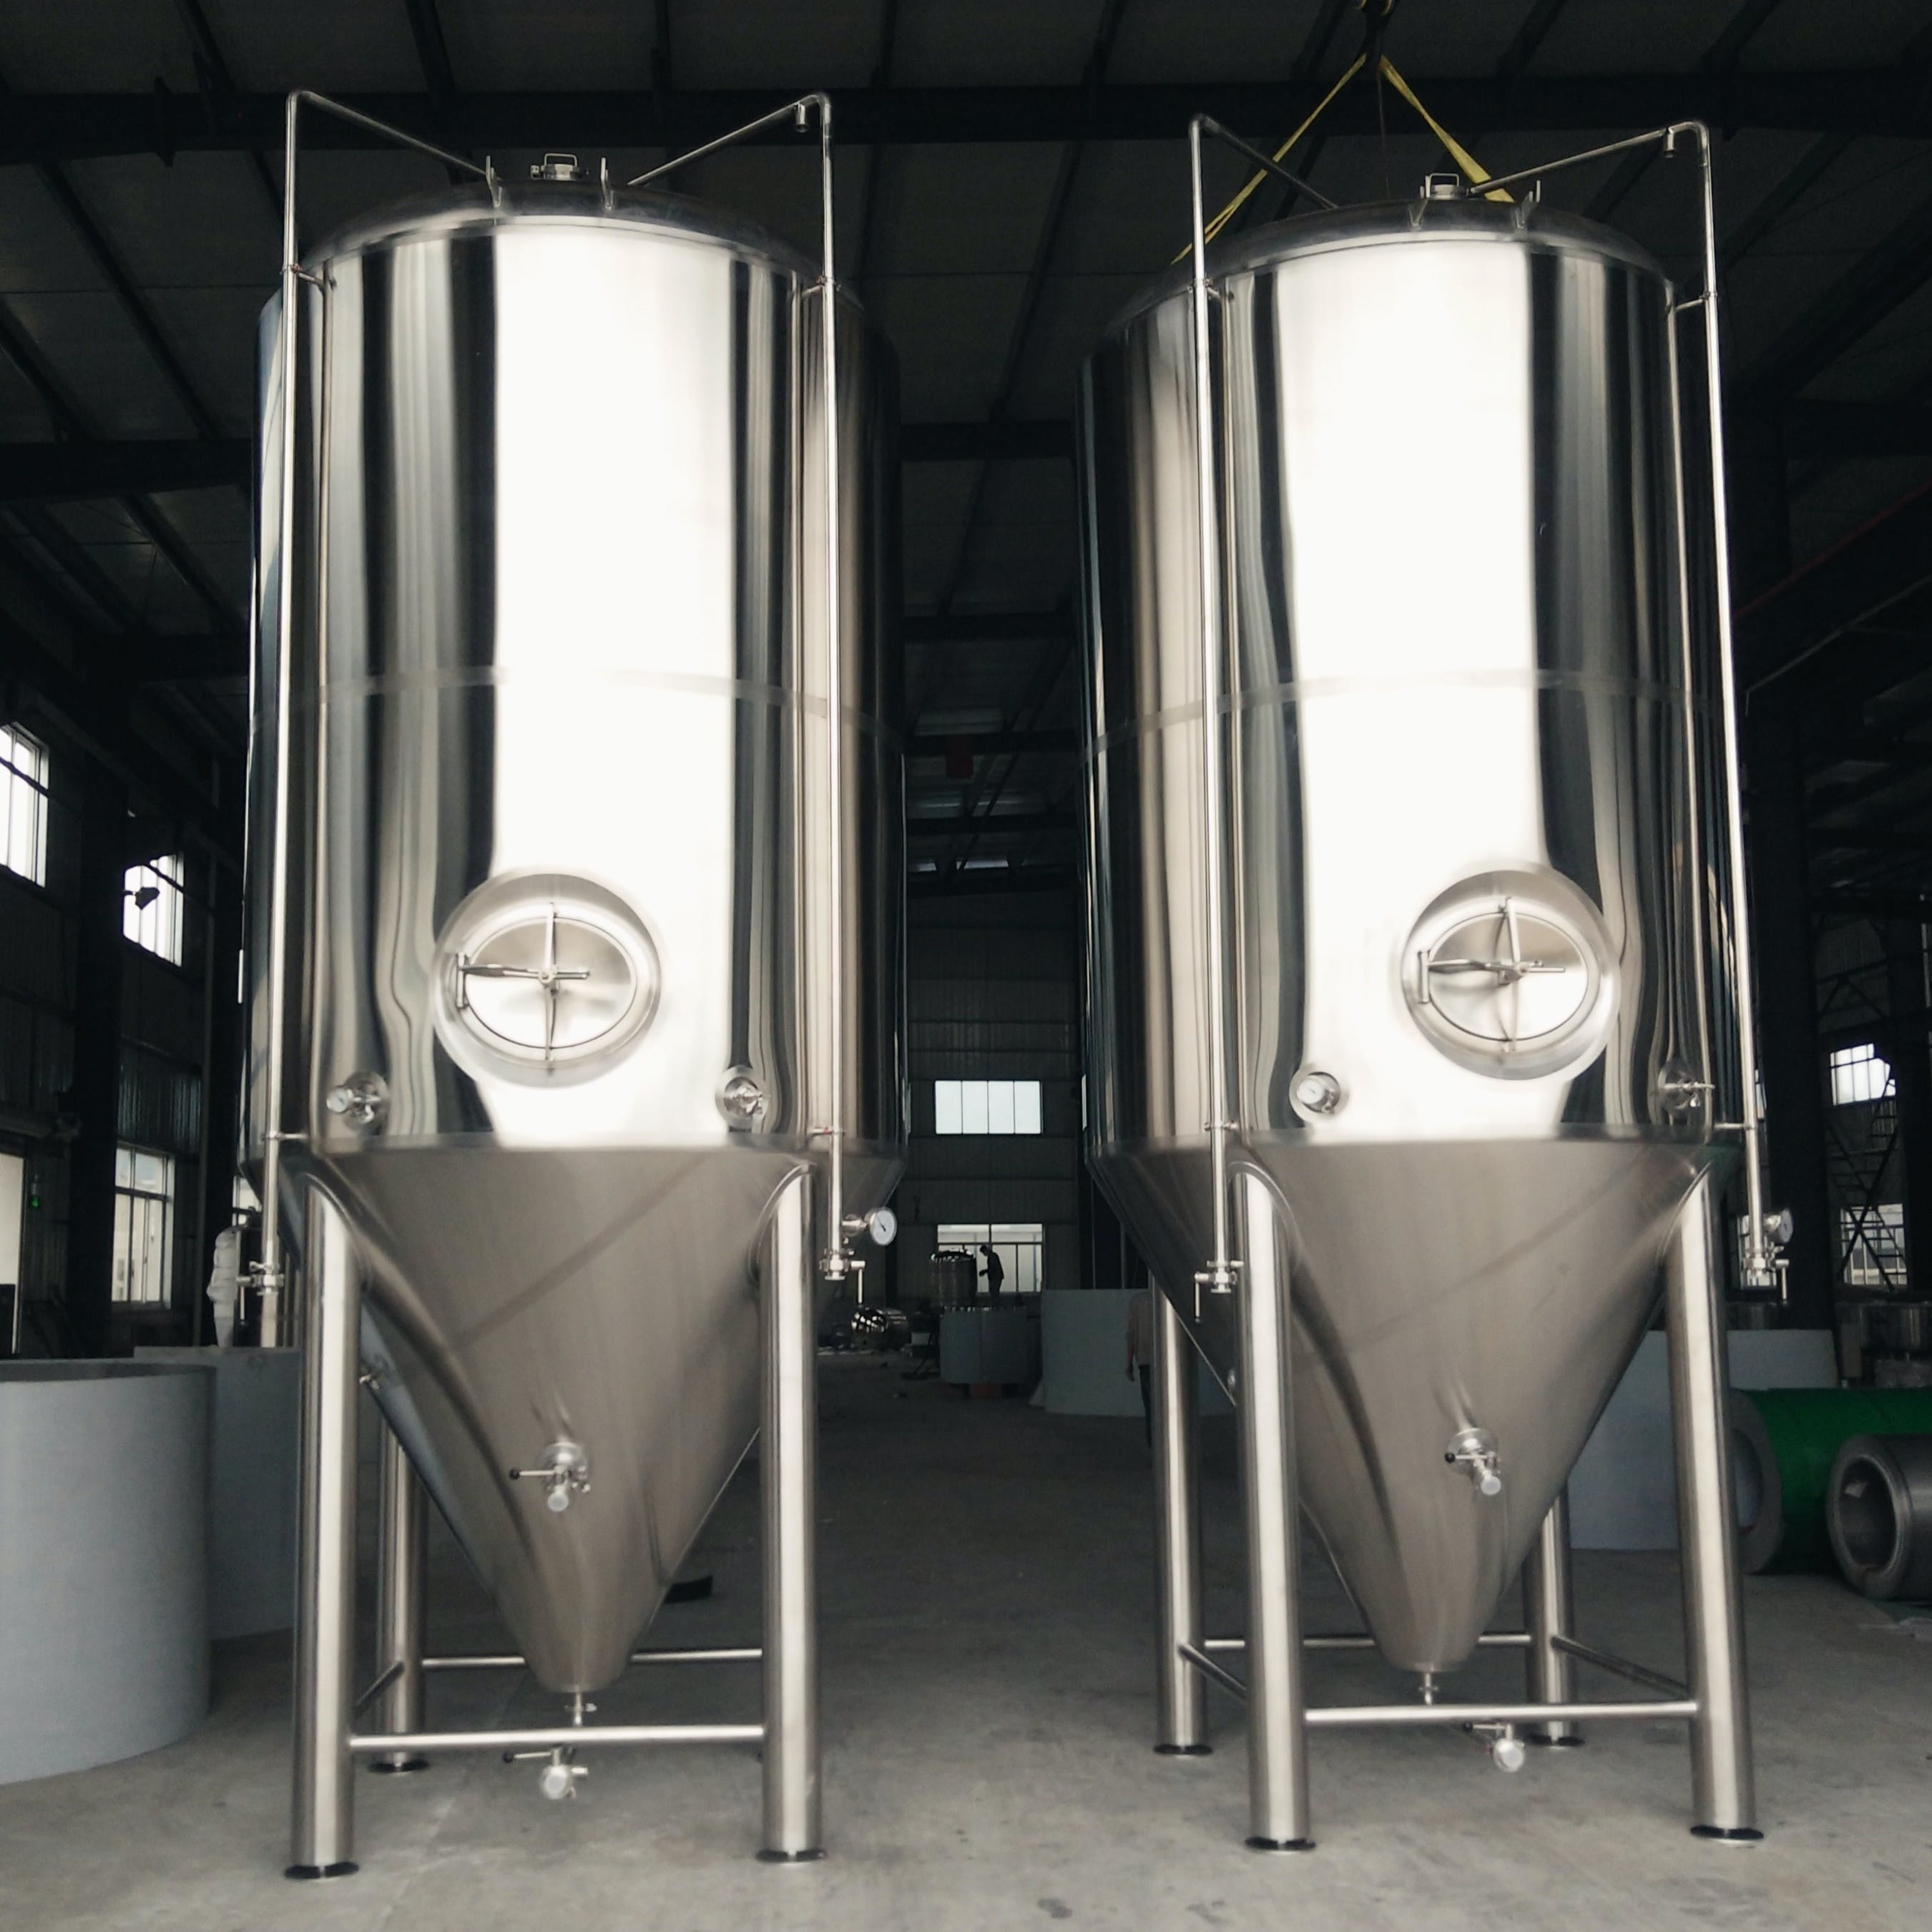 60BBL Fermenters Fermenter sold by TD Tanks, LLC